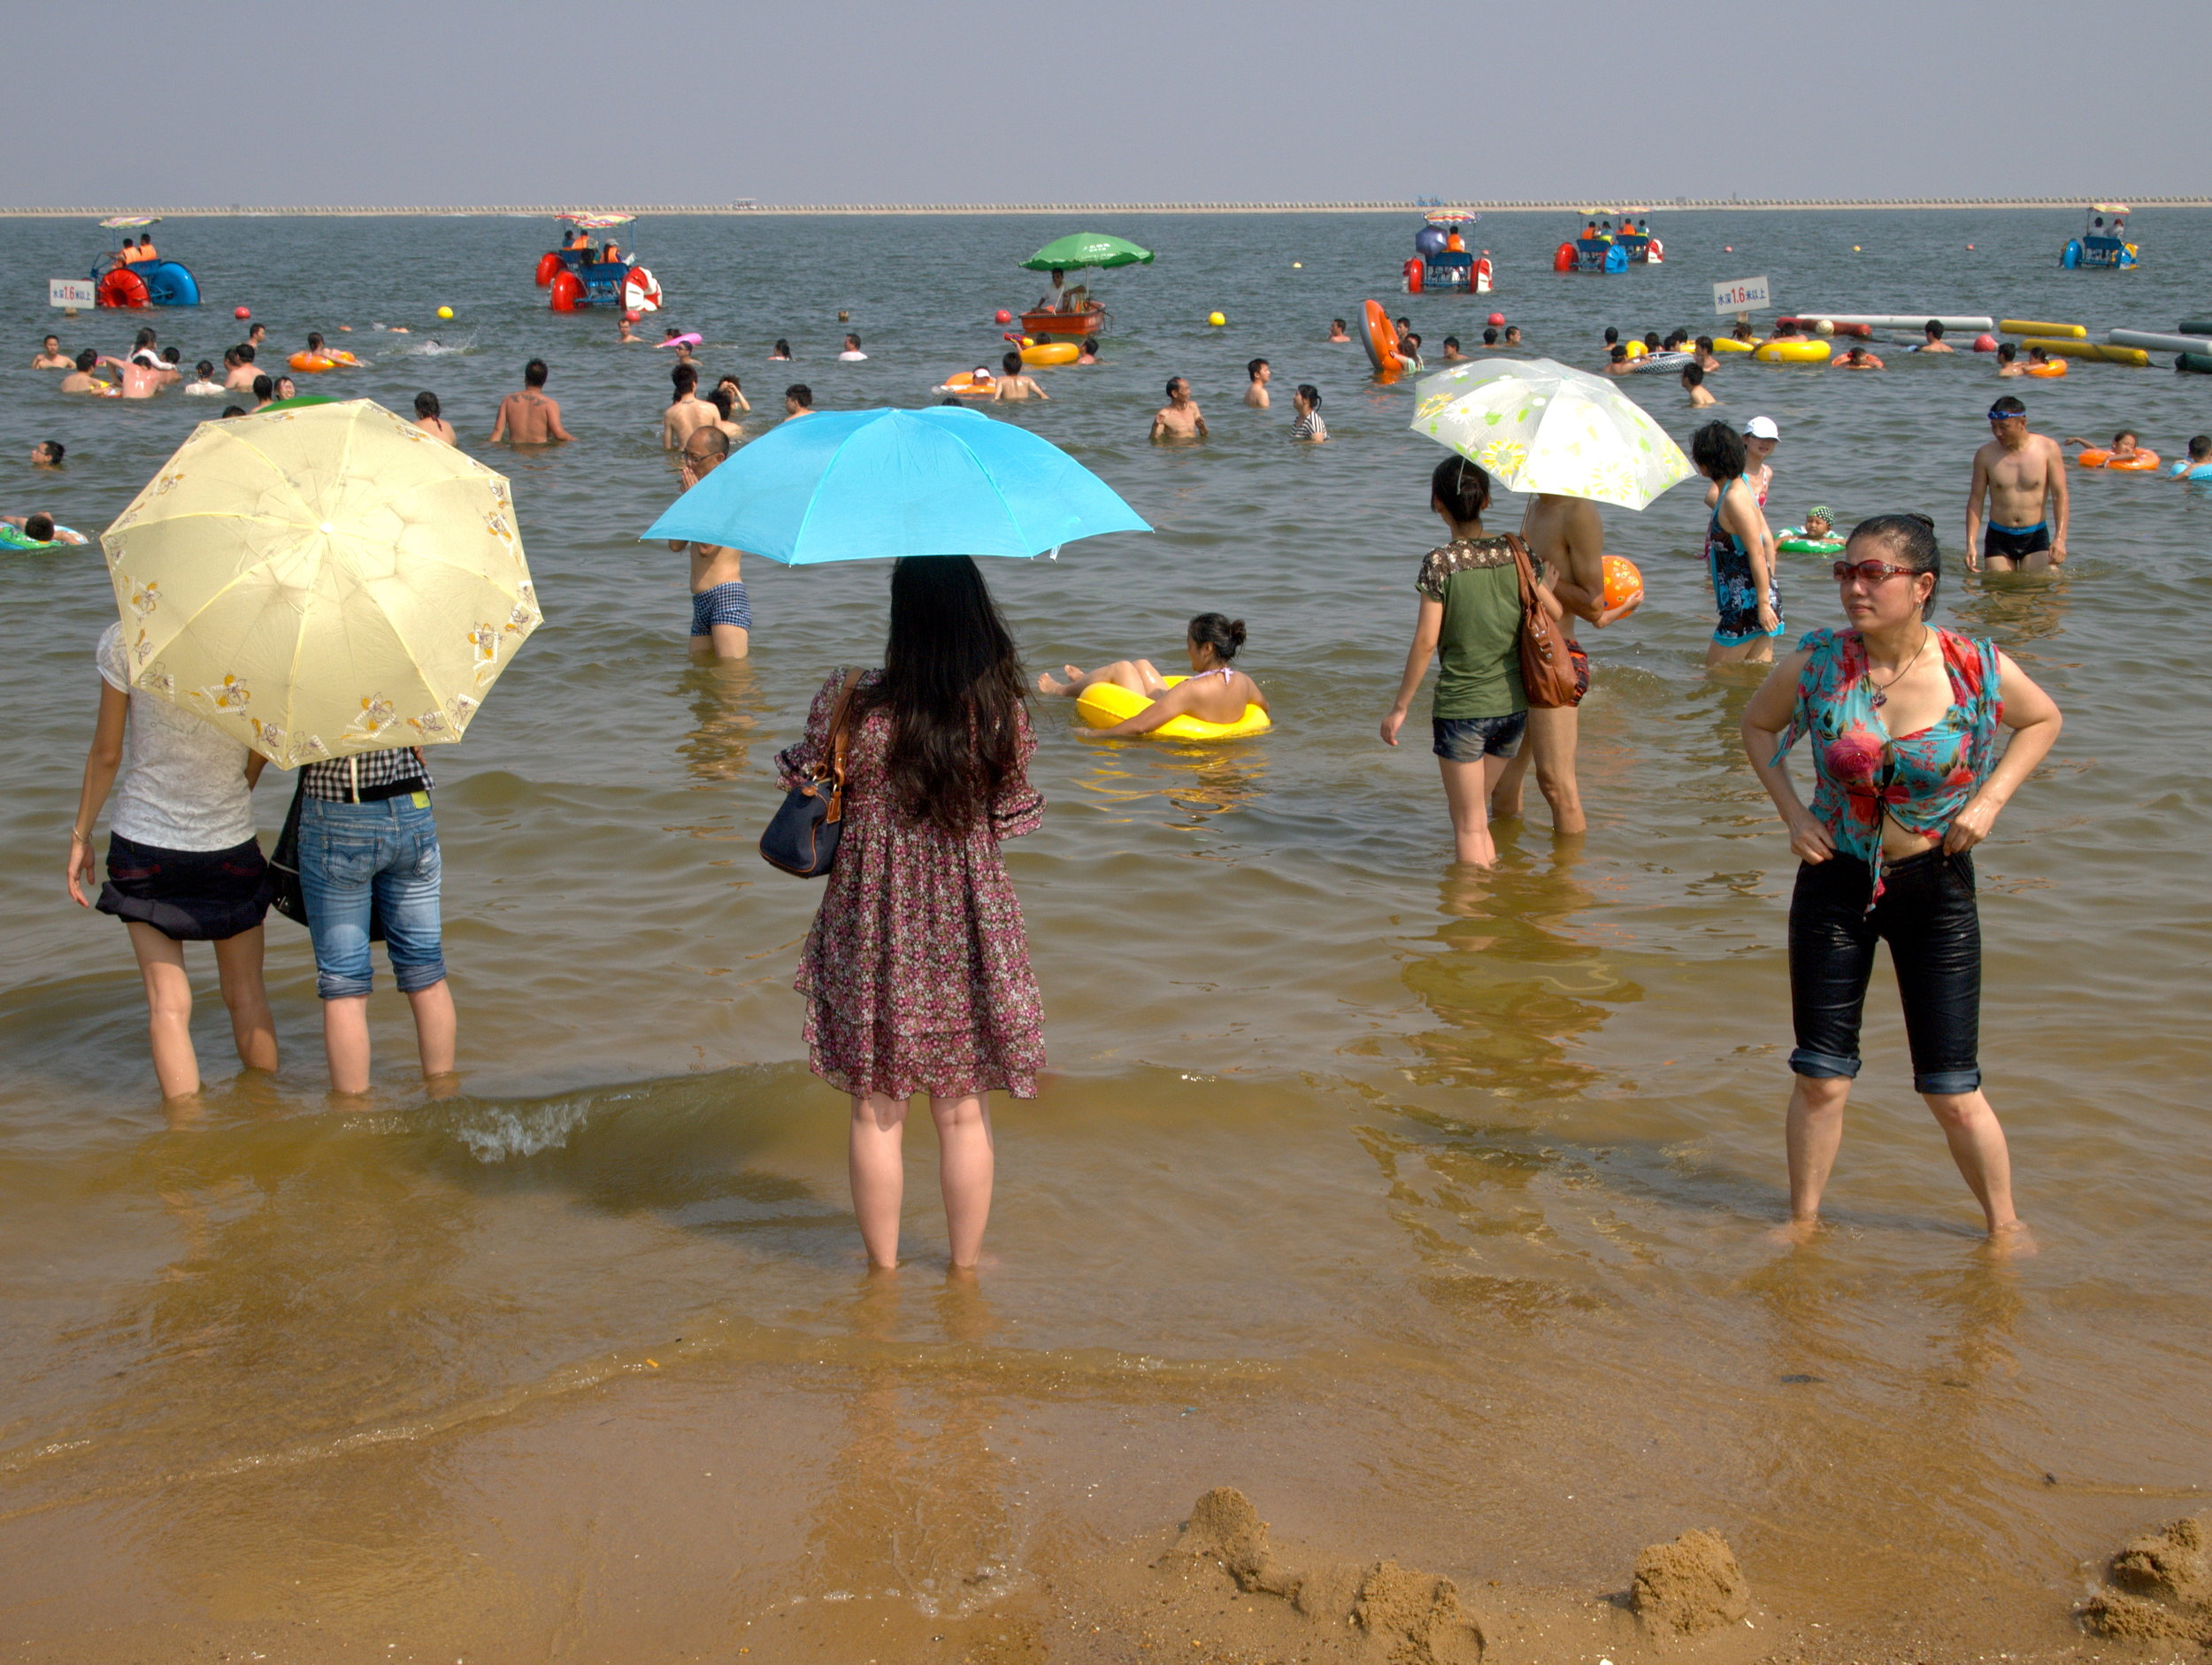 People carrying umbrellas to protect their skin from the sun at Jinshan City Beach, Shanghai, China. Photo: (C) Remko Tanis